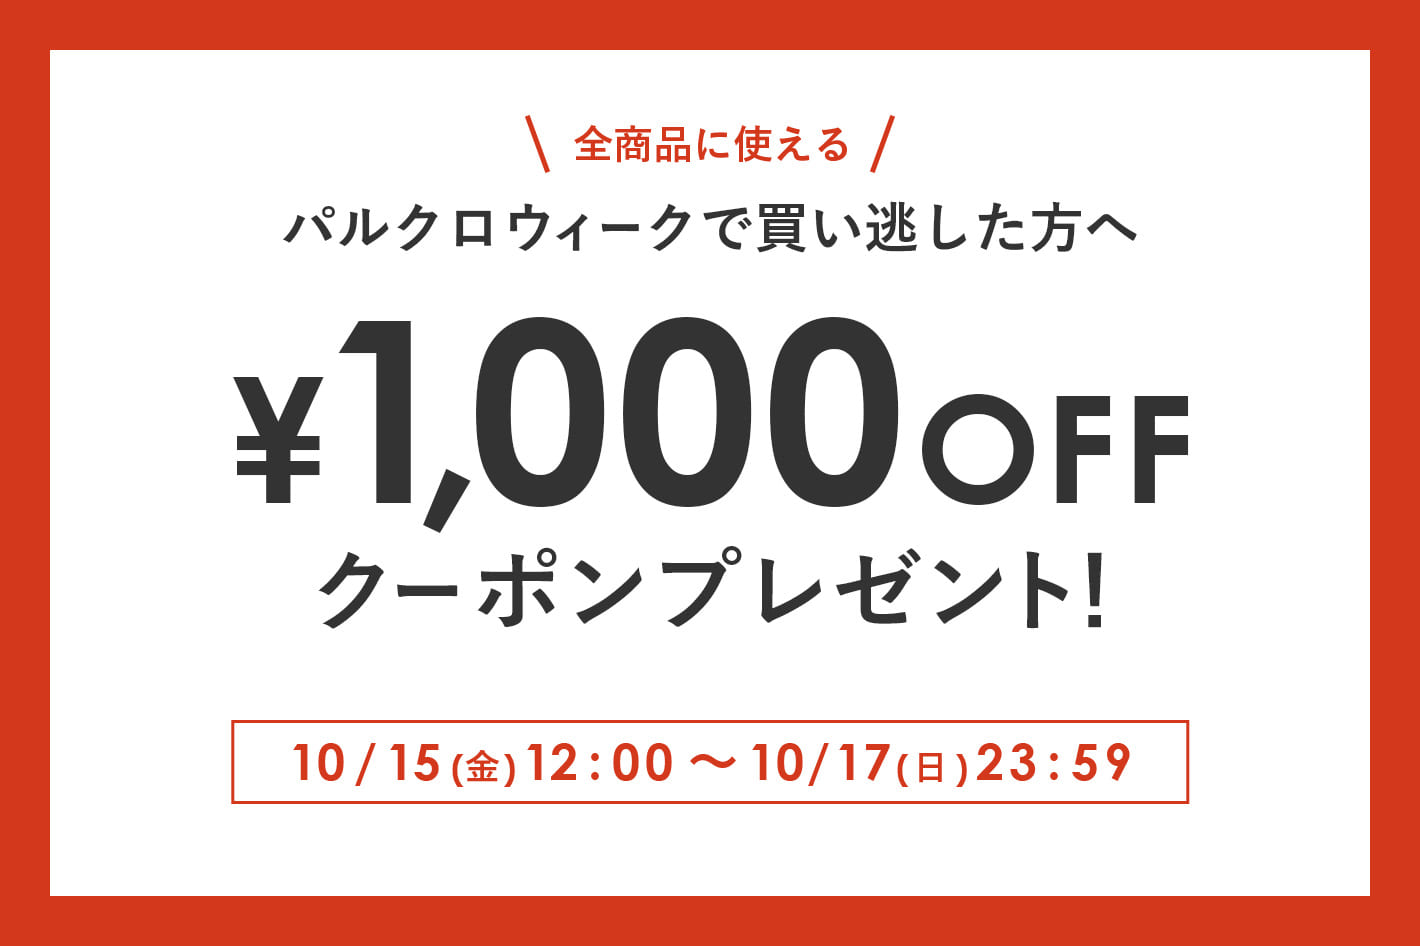 【Daily russet】1,000円OFFクーポン